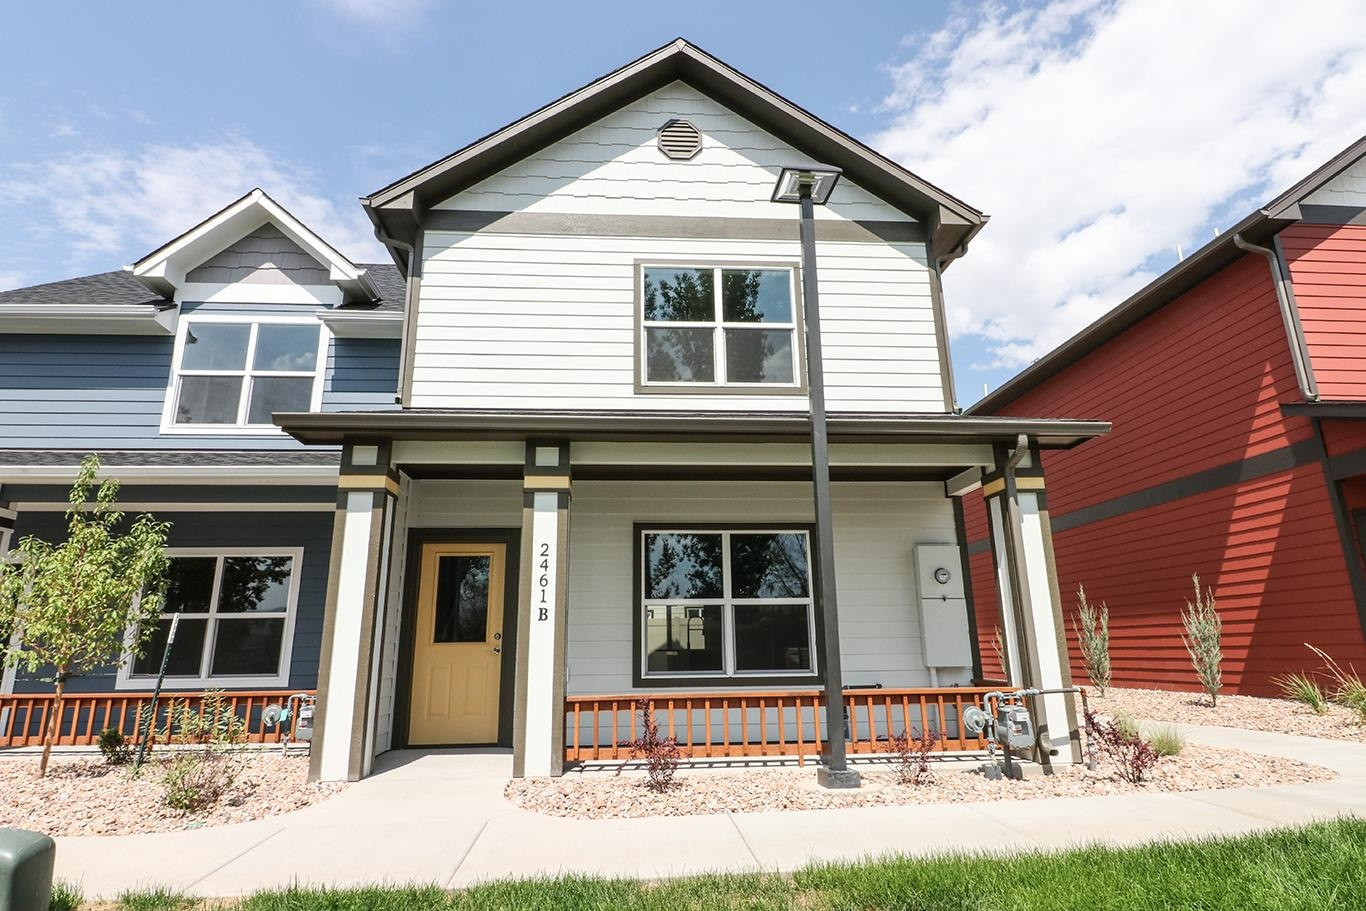 New Construction Townhome in great central location. 2 bed, 2.5 baths, 1 car detached garage & 1232 sq ft. Nice finishes which include quartz counters, stainless steel appliances, luxury vinyl tile flooring, on demand hot water & more. Don't miss out on this great unit!!